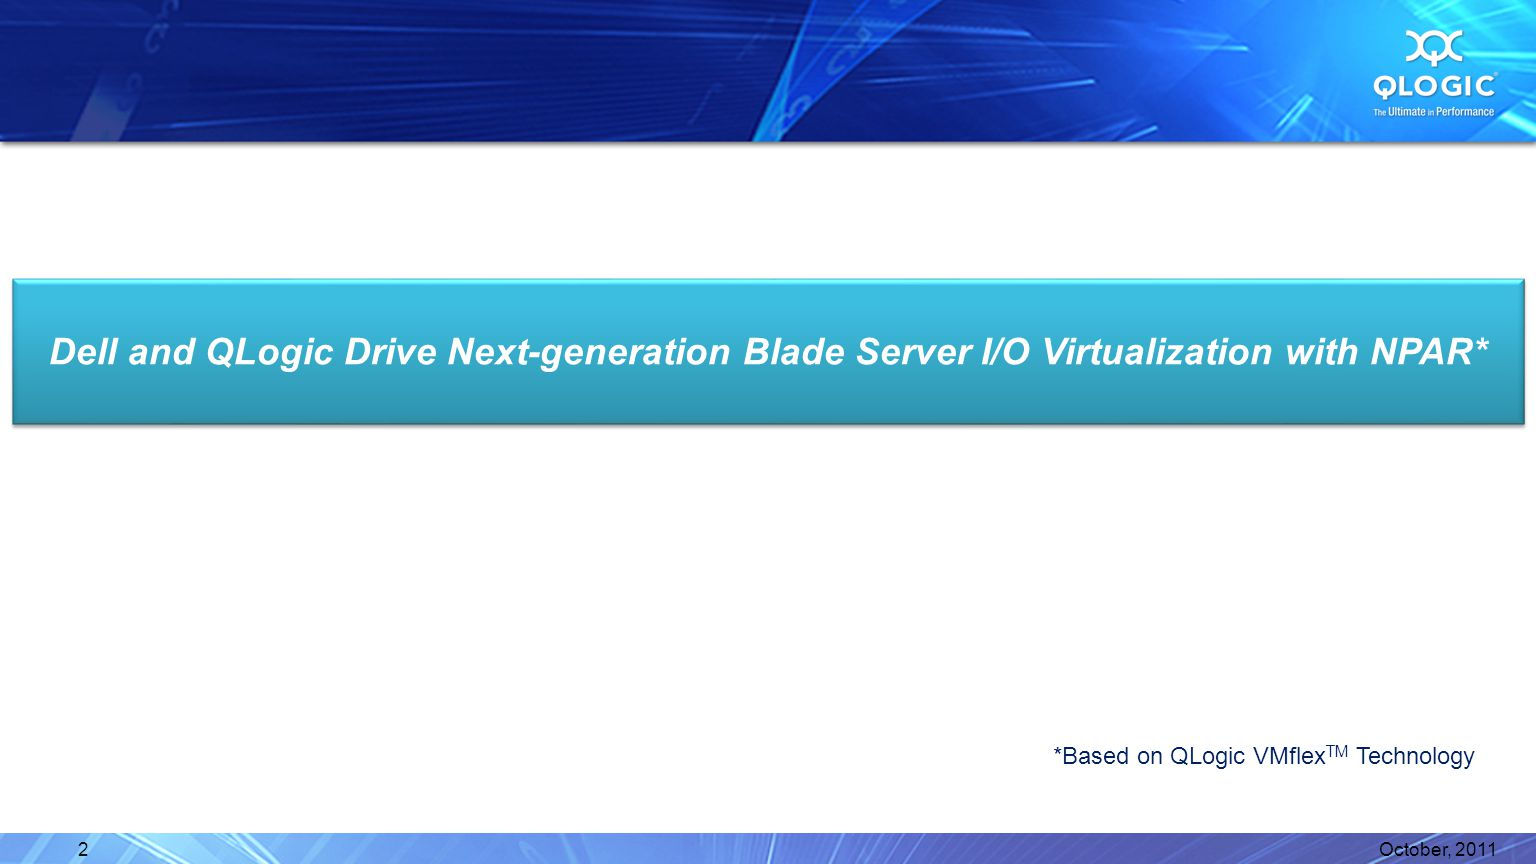 Dell and QLogic Drive Next-generation Blade Server I/O Virtualization with NPAR*